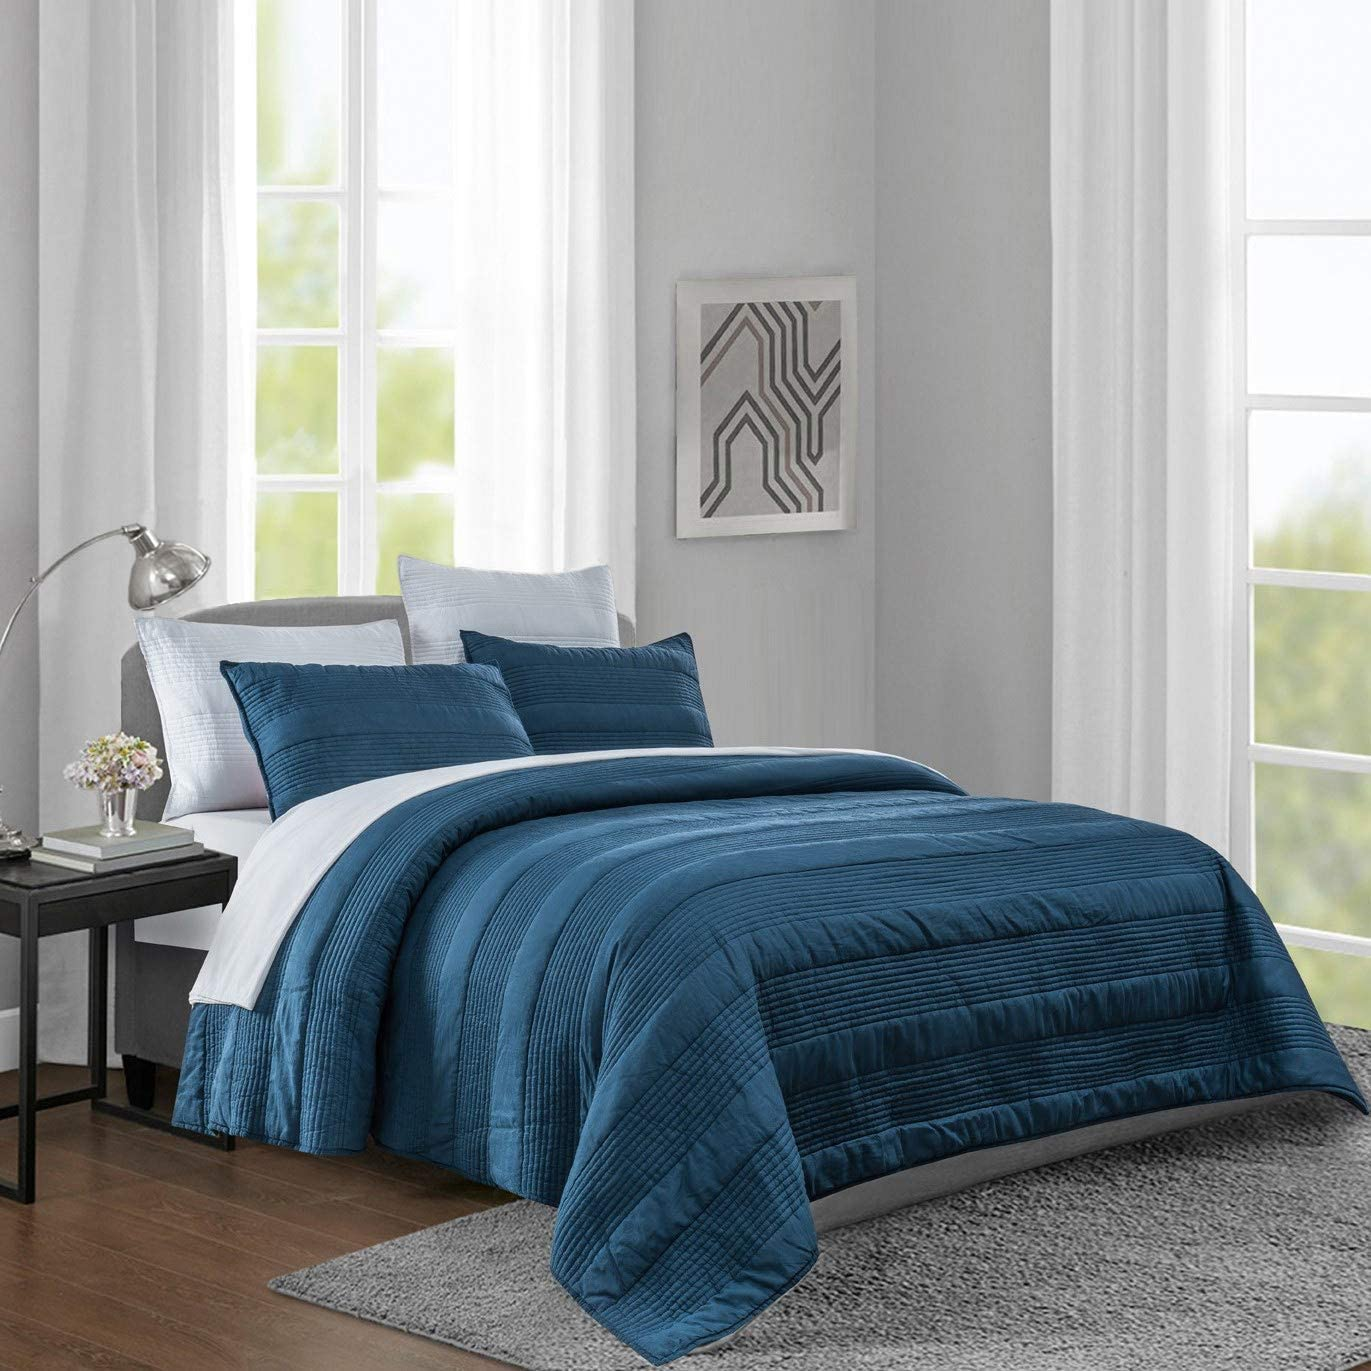 SHALALA Quilt Set Full/Queen-3 Pieces Reversible Washed Bedspread Coverlet Bedding Set,Striped Stitching Cozy & Breathable Bedspread for All Seasons(Rainstom Blue , Full/Queen)